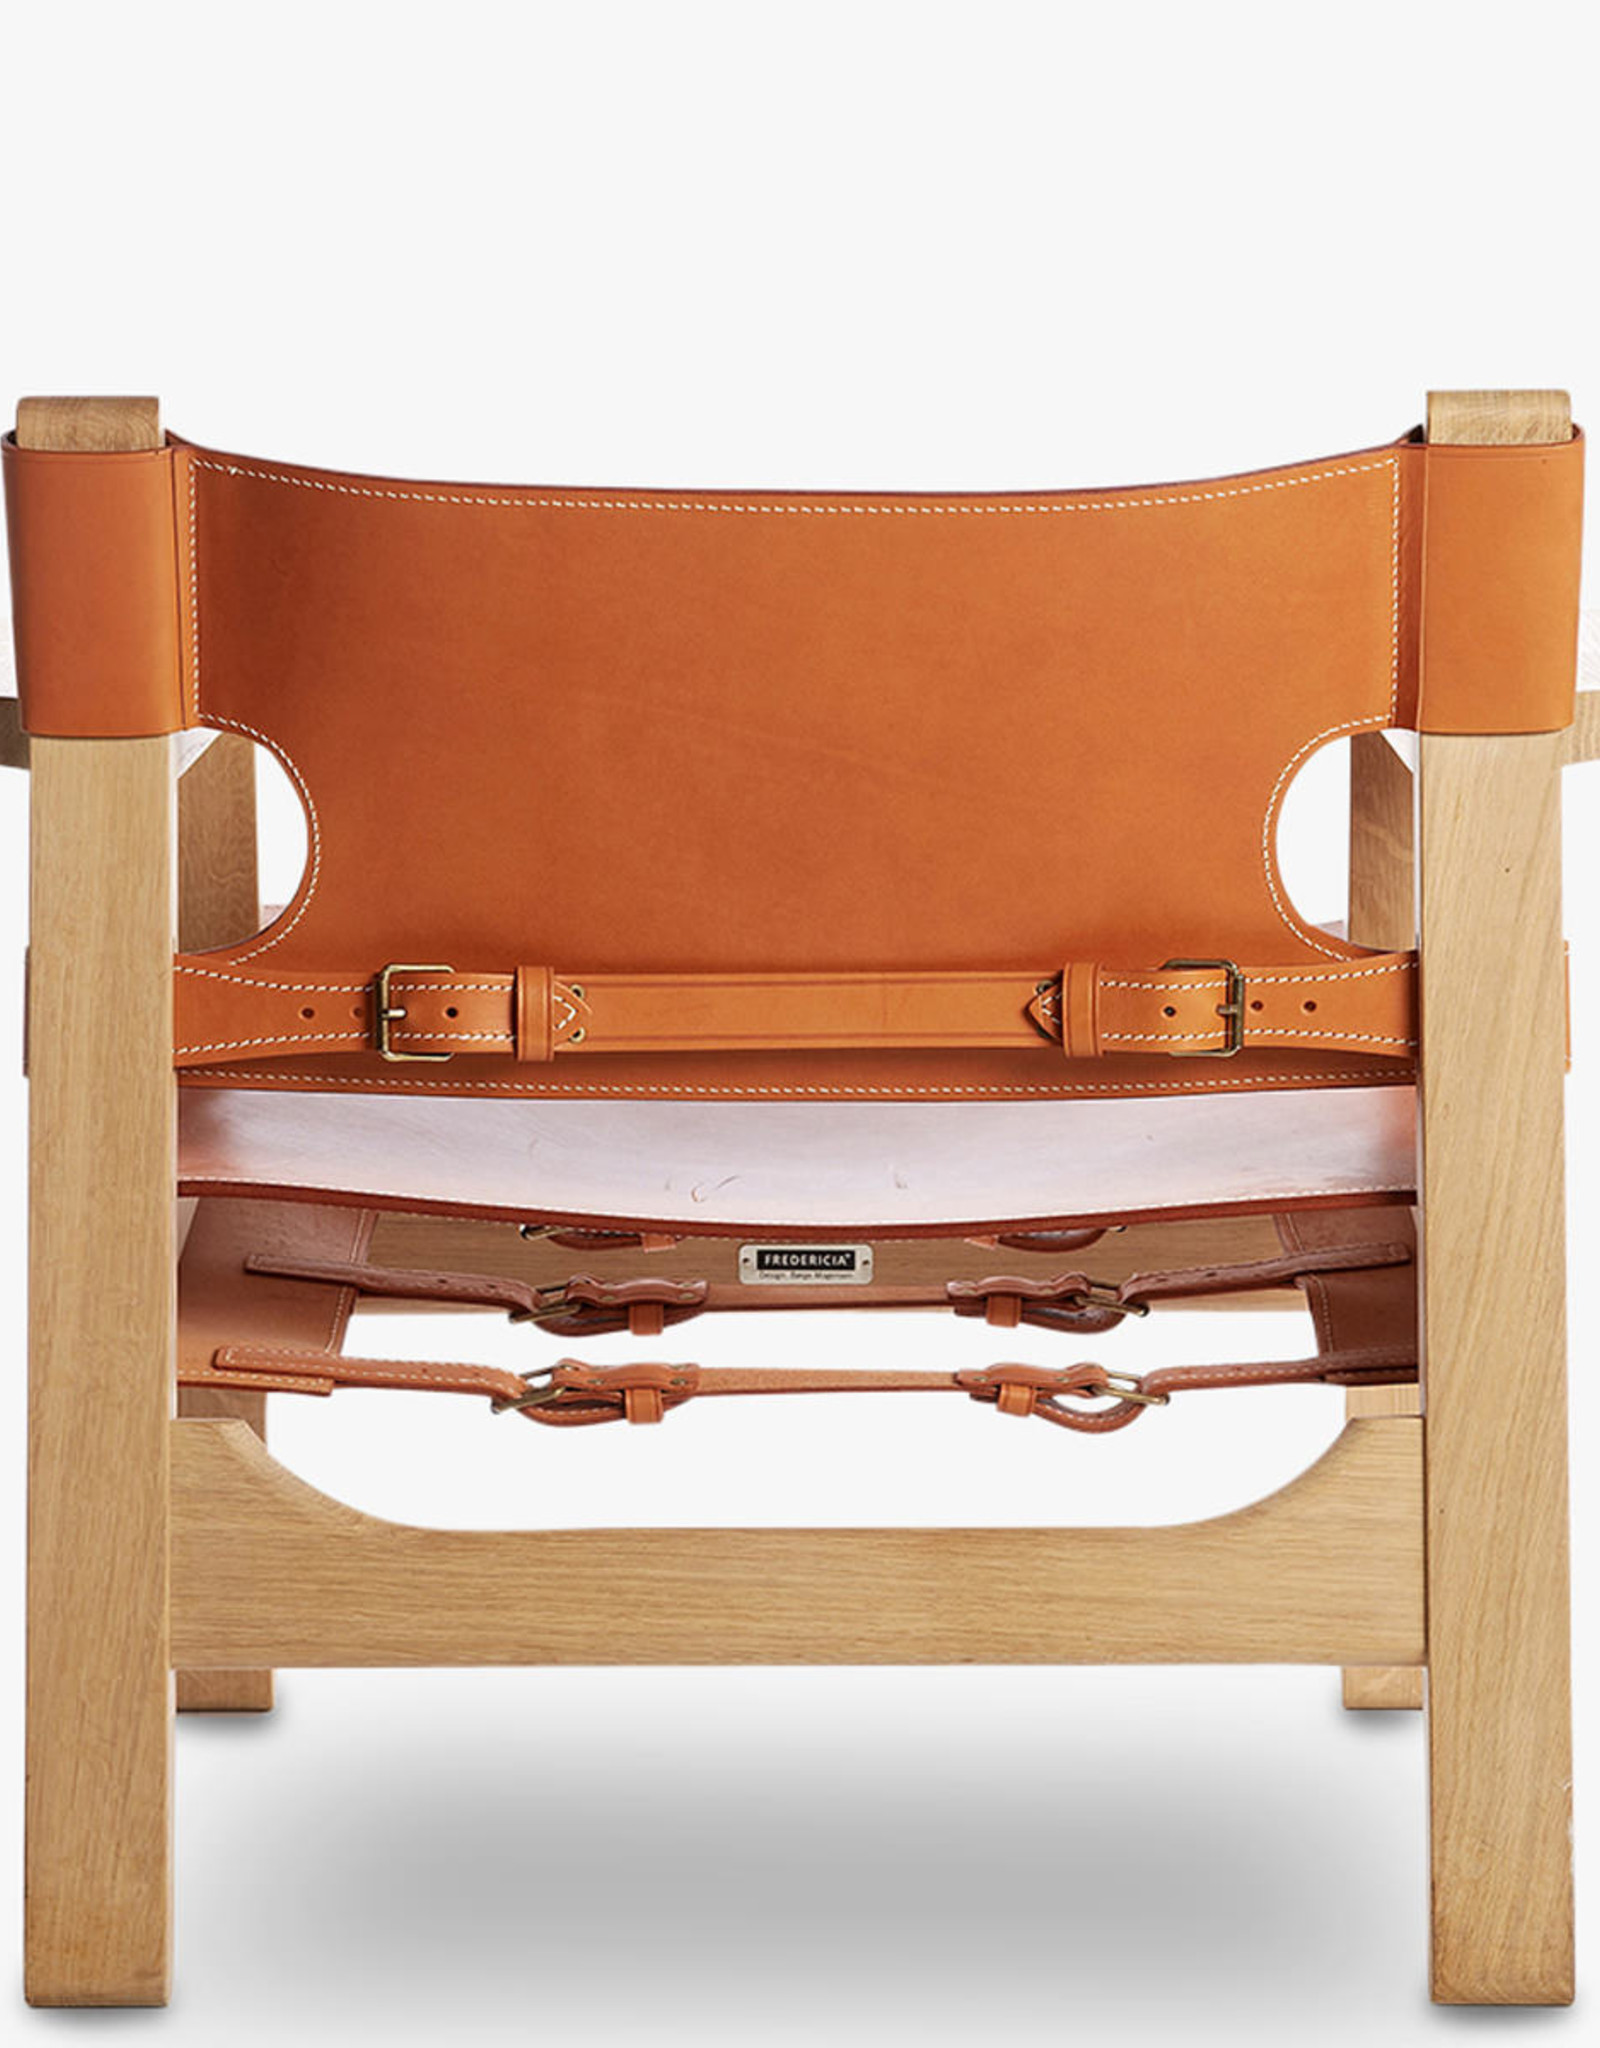 FREDERICIA Spanish Chair by Børge Mogensen | Natural leather | Soaped oak frame | SH330mm